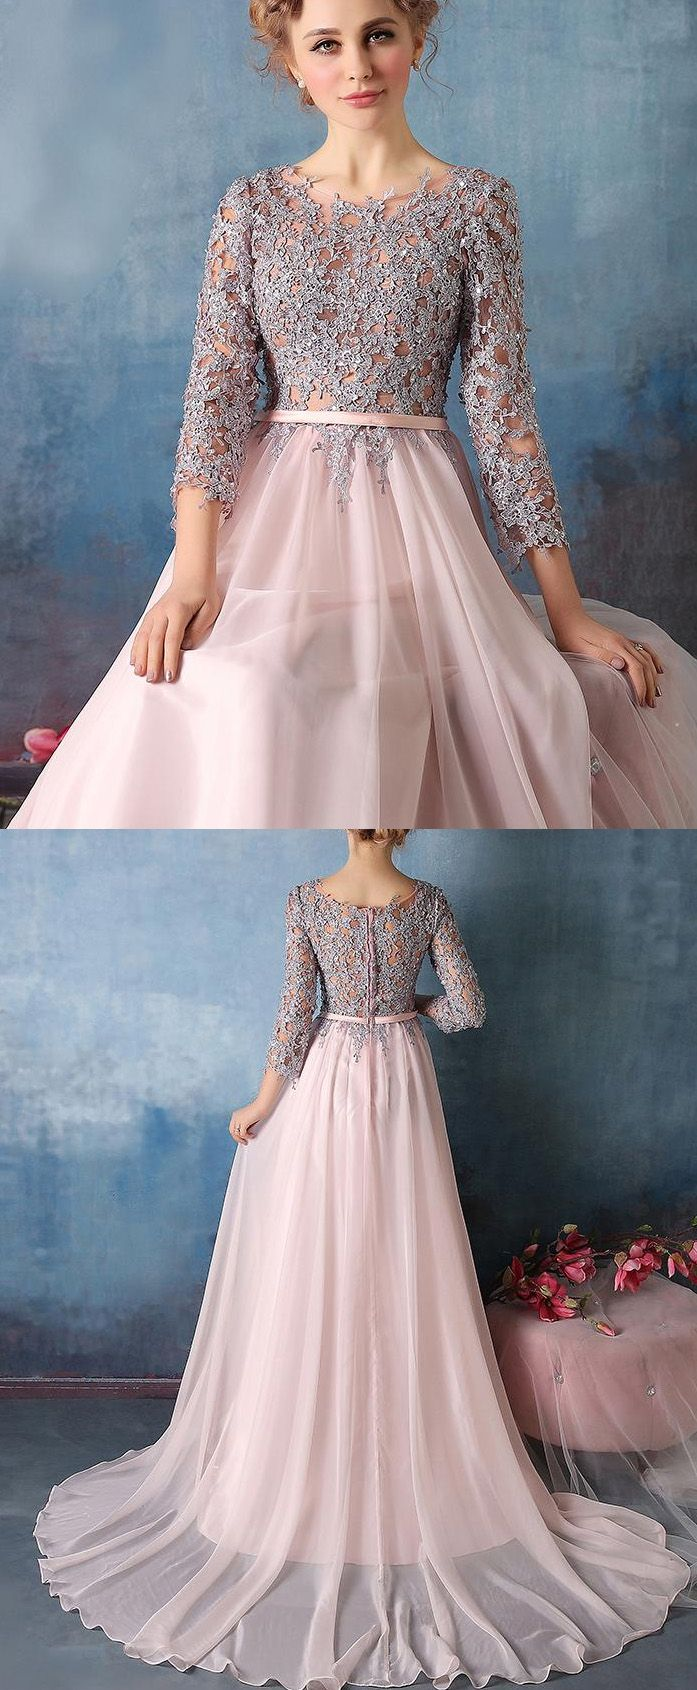 Long Prom Dresses, Prom Dresses With Sleeves, Prom Dresses Long, Grey Prom Dresses, Prom dresses Sale, Prom Dresses With Long Sleeves, Prom Long Dresses, Long Evening Dresses, Dresses With Sleeves, Long Dresses With Sleeves, Zipper Prom Dresses, Applique Prom Dresses, Sweep Train Prom Dresses, Sleeves Evening Dresses